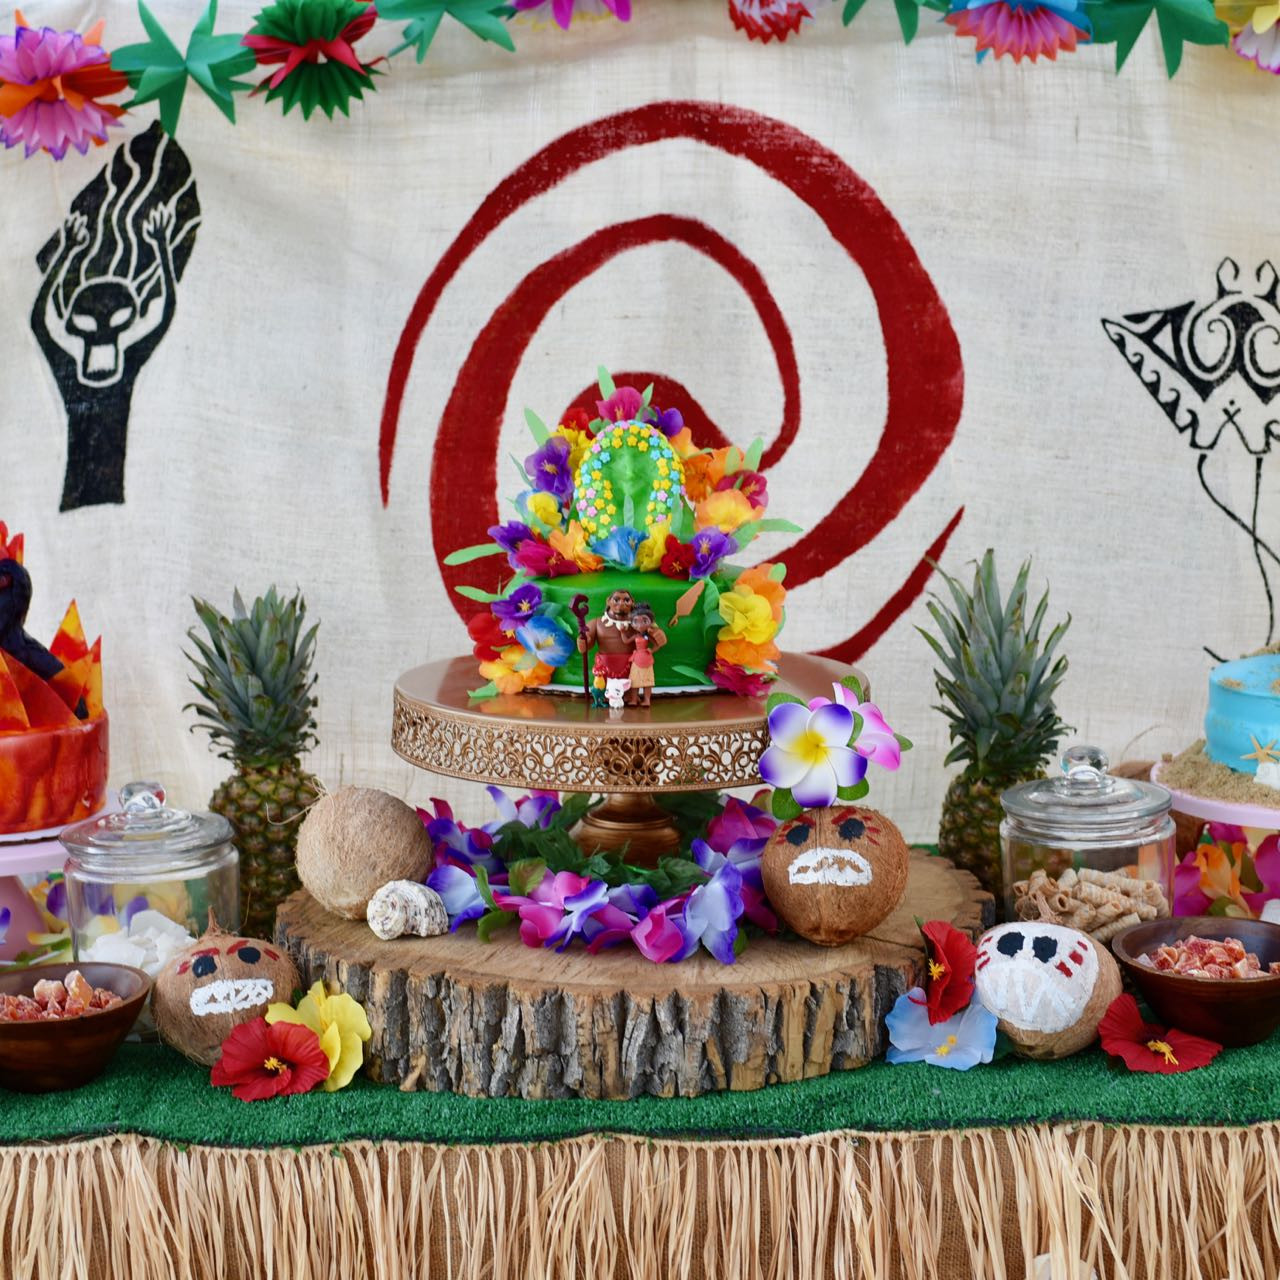 Best ideas about Moana Birthday Party . Save or Pin Moana Birthday Party with Incredible Details Make Life Now.